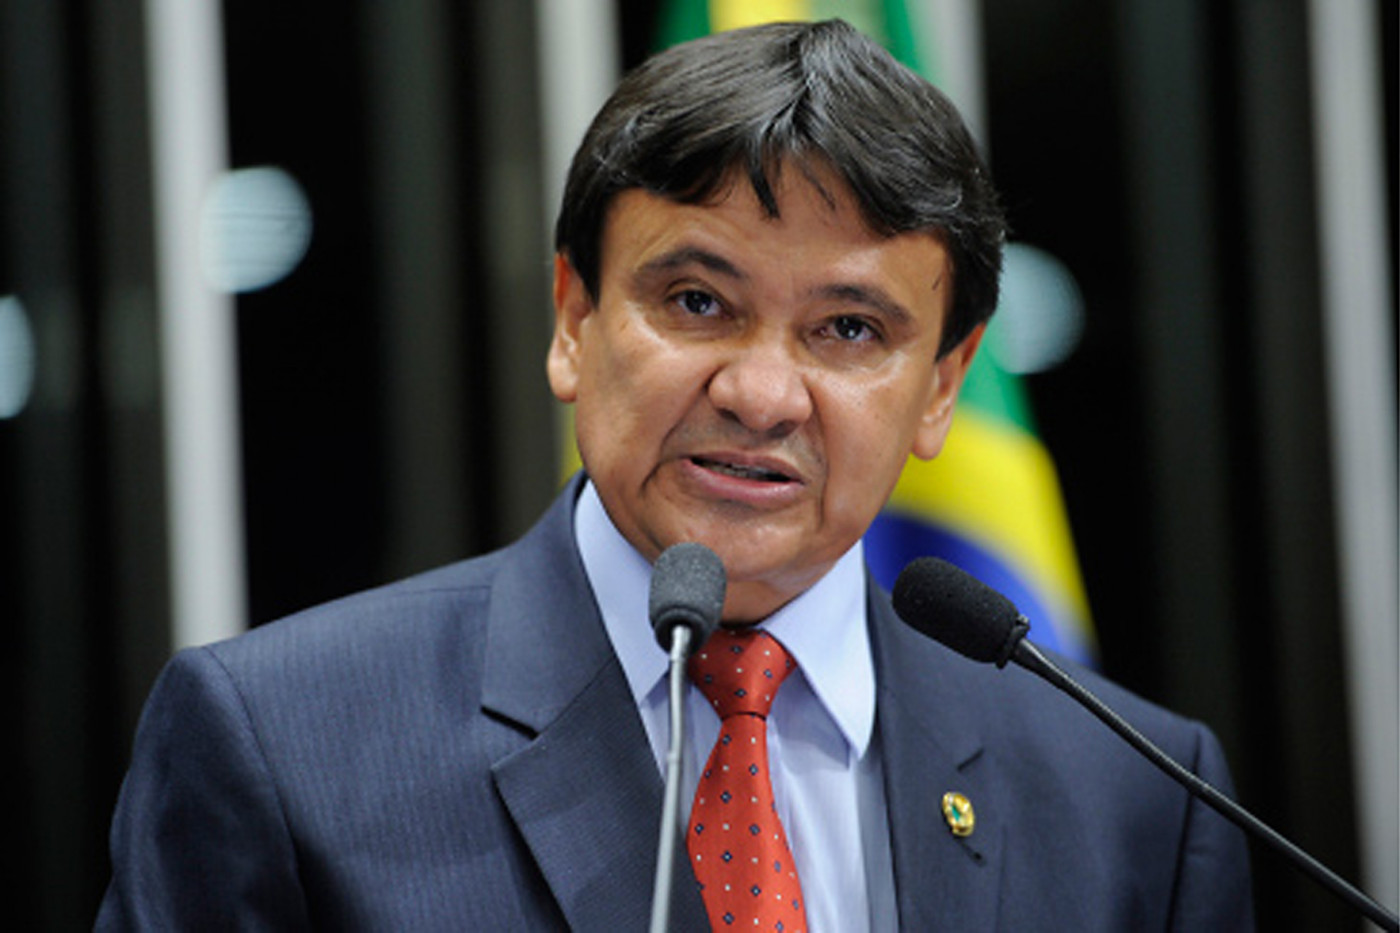 Wellington Dias é governador do Piauí